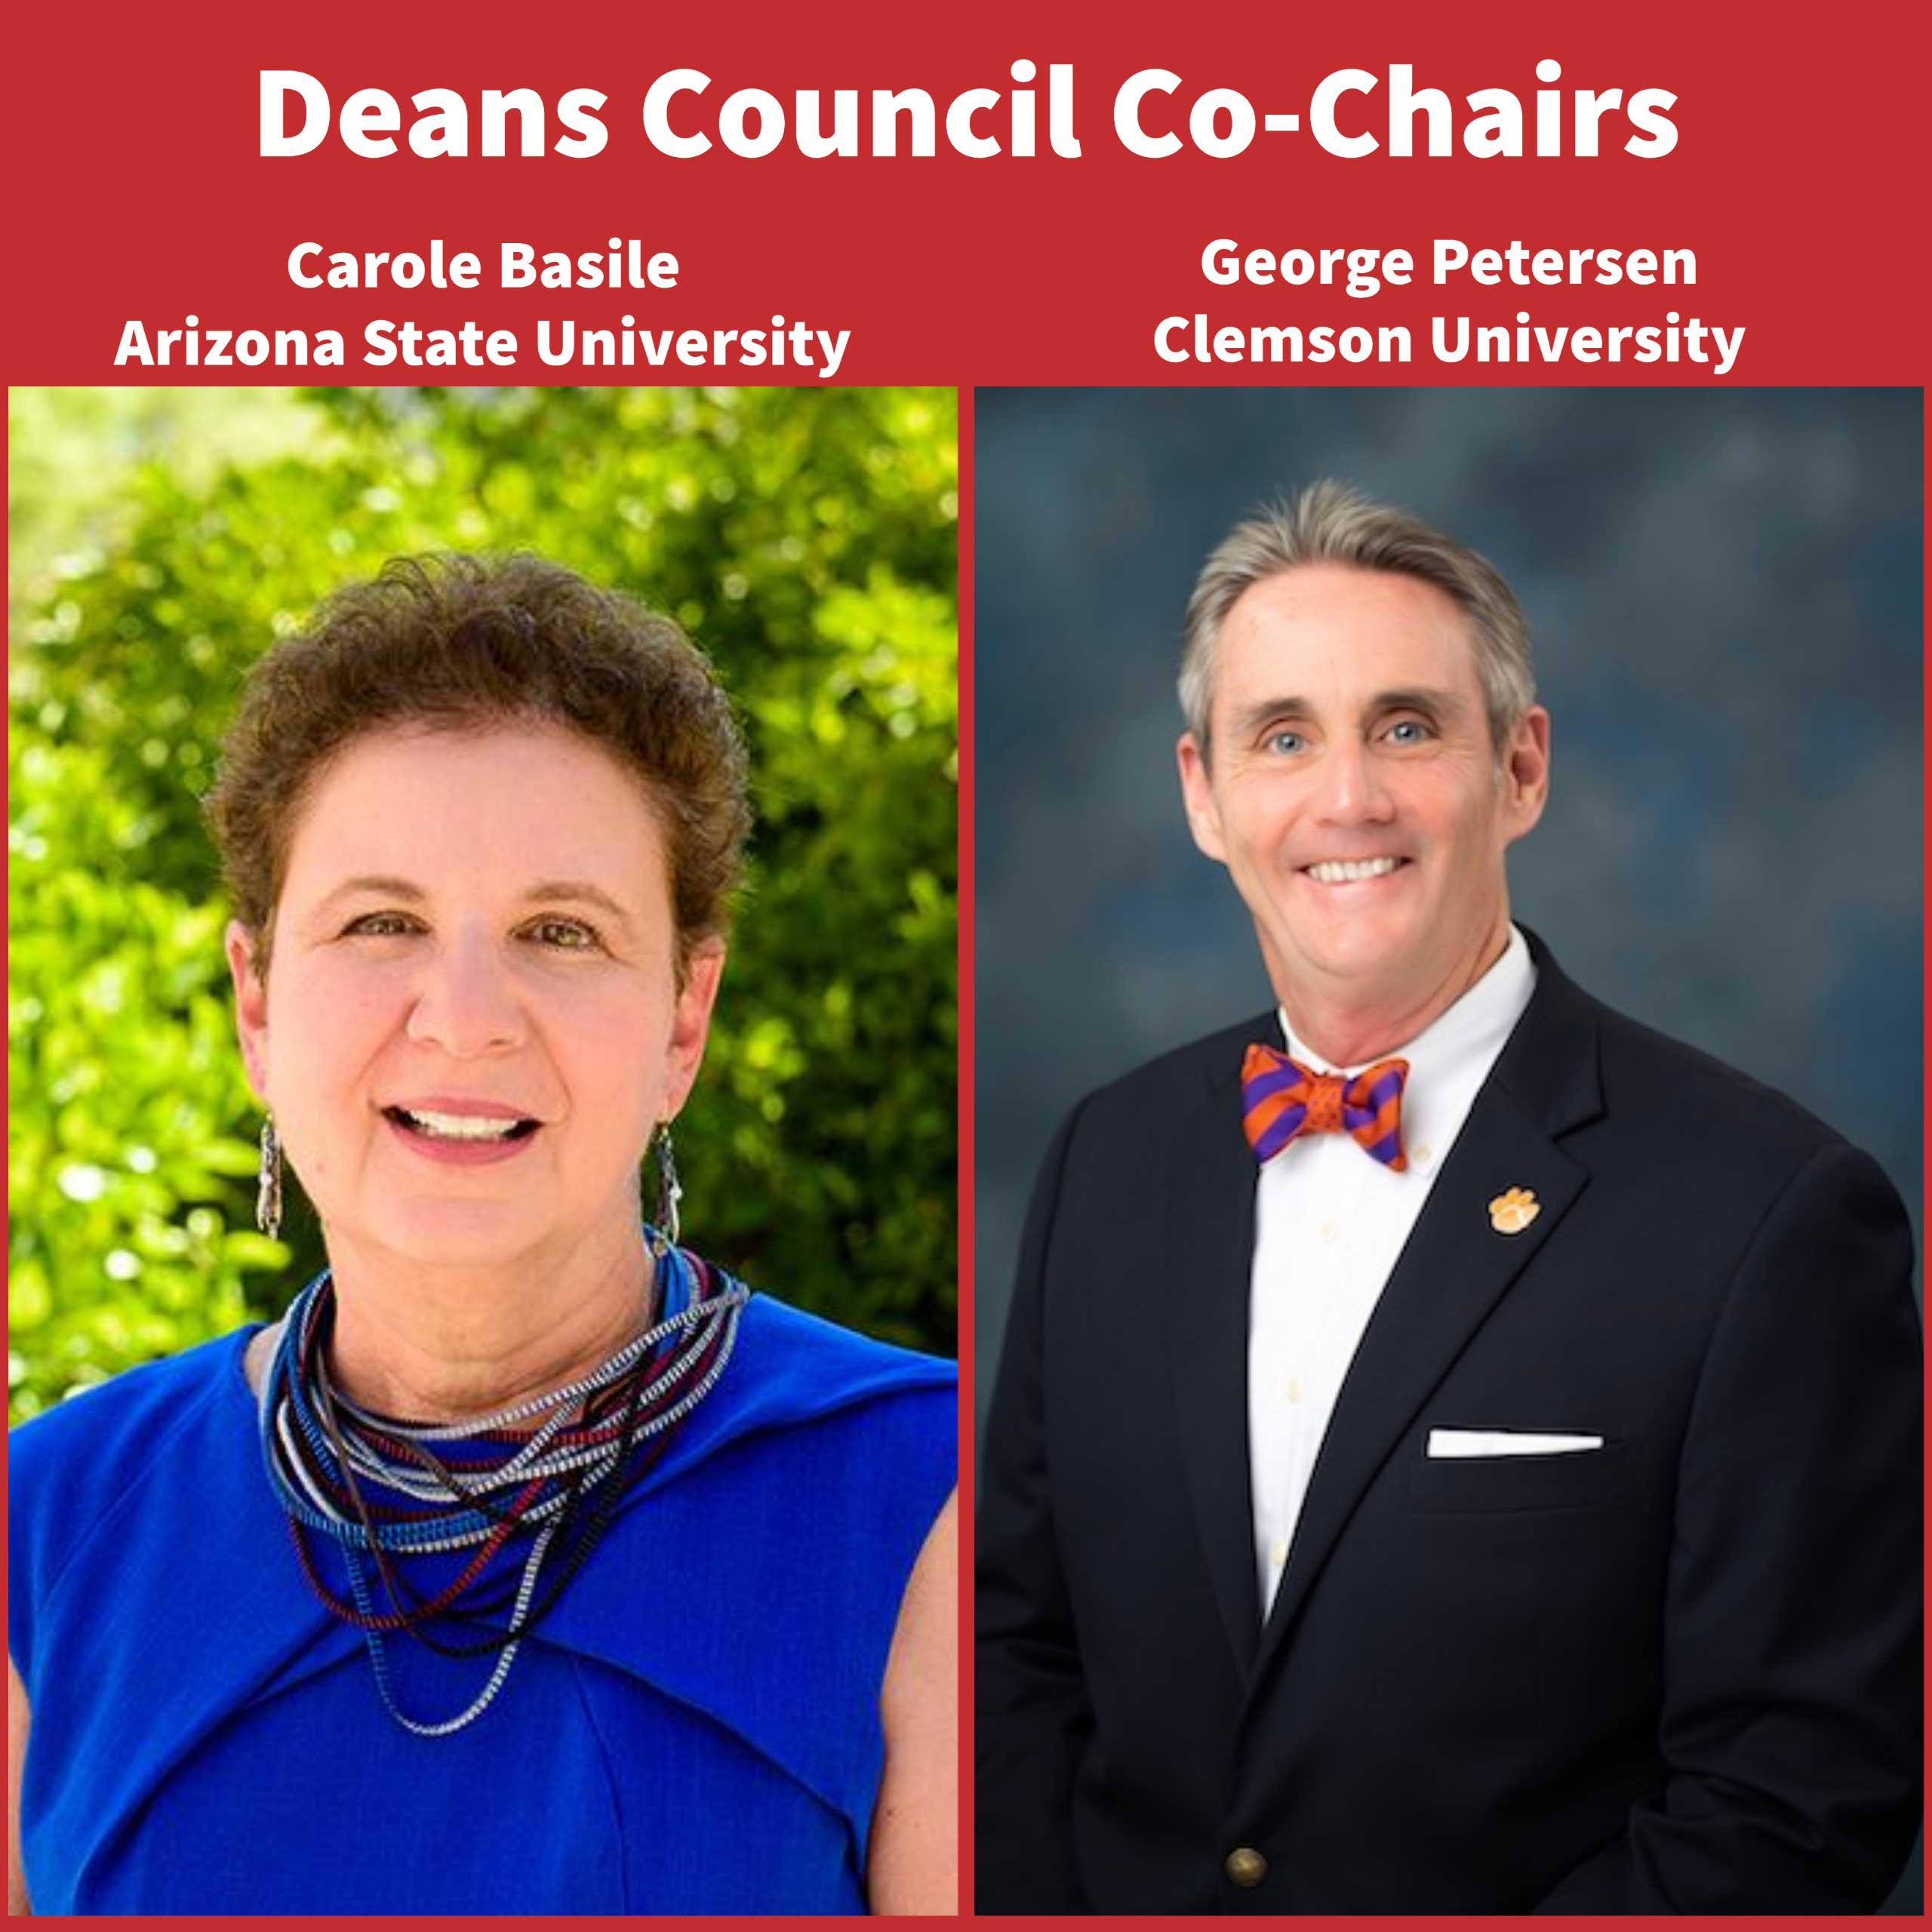 Deans Council Co-Chairs Carole Basile and George Petersen